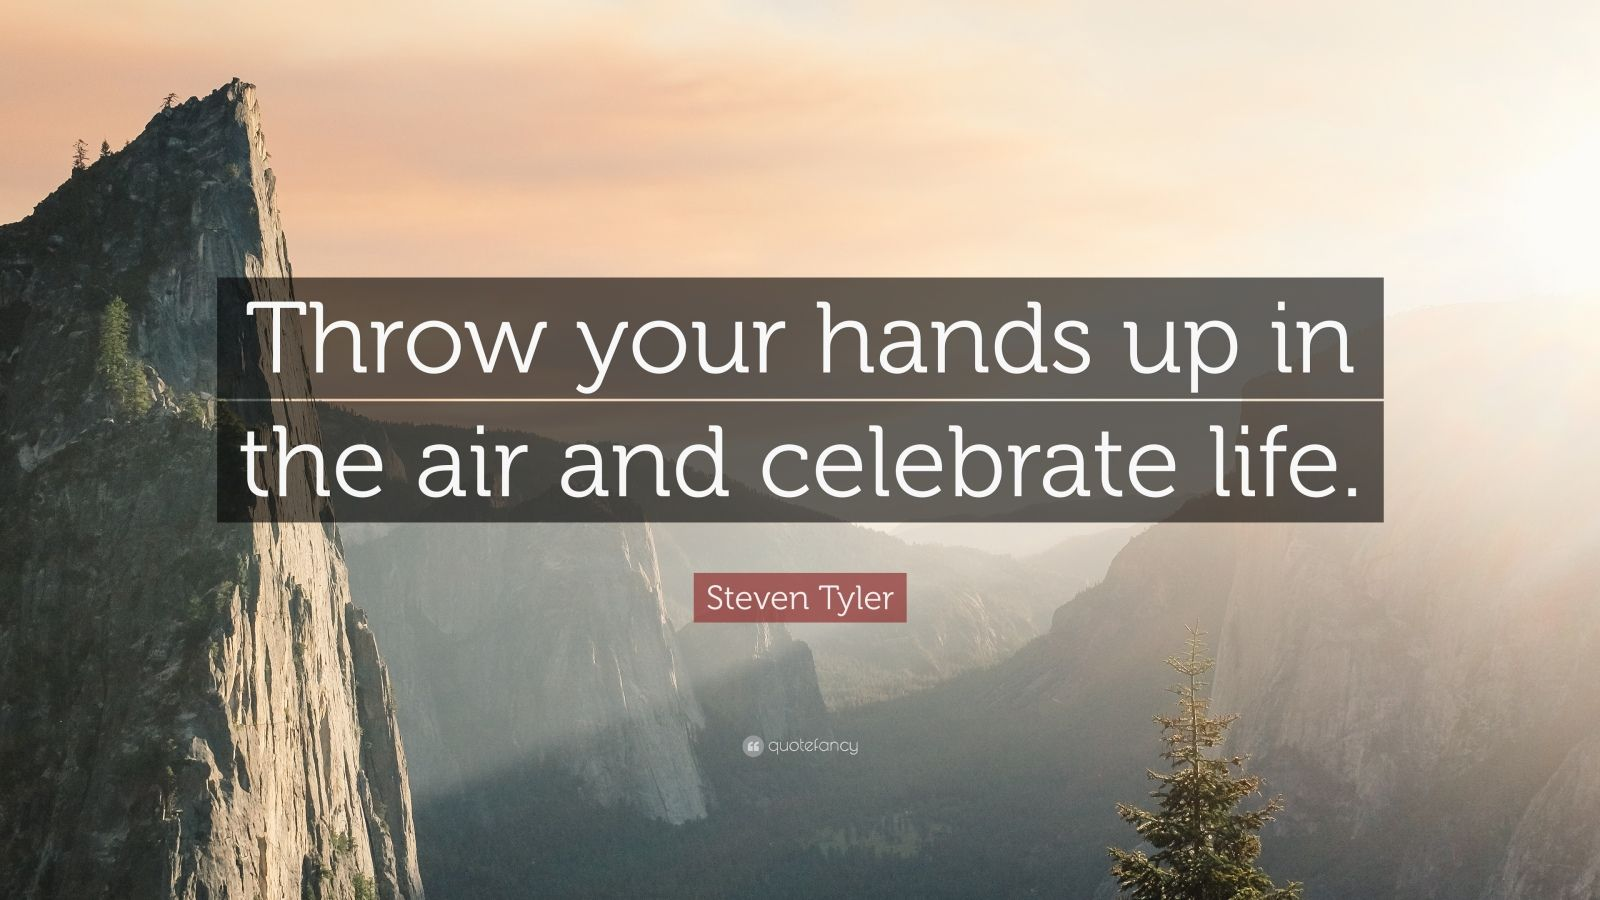 Steven Tyler Quotes 100 Wallpapers Quotefancy